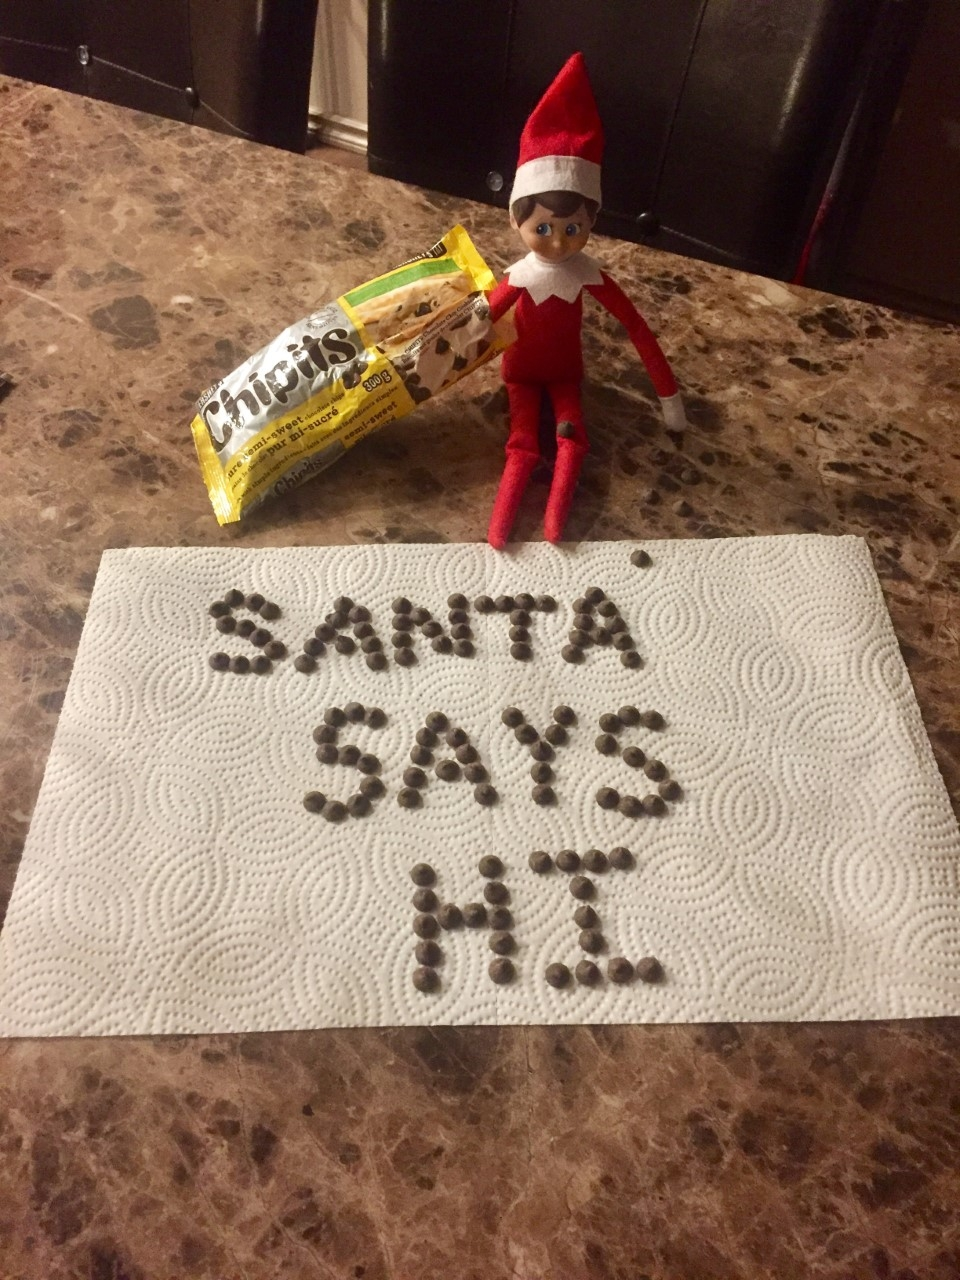 Ralph the Elf has a message for my boys